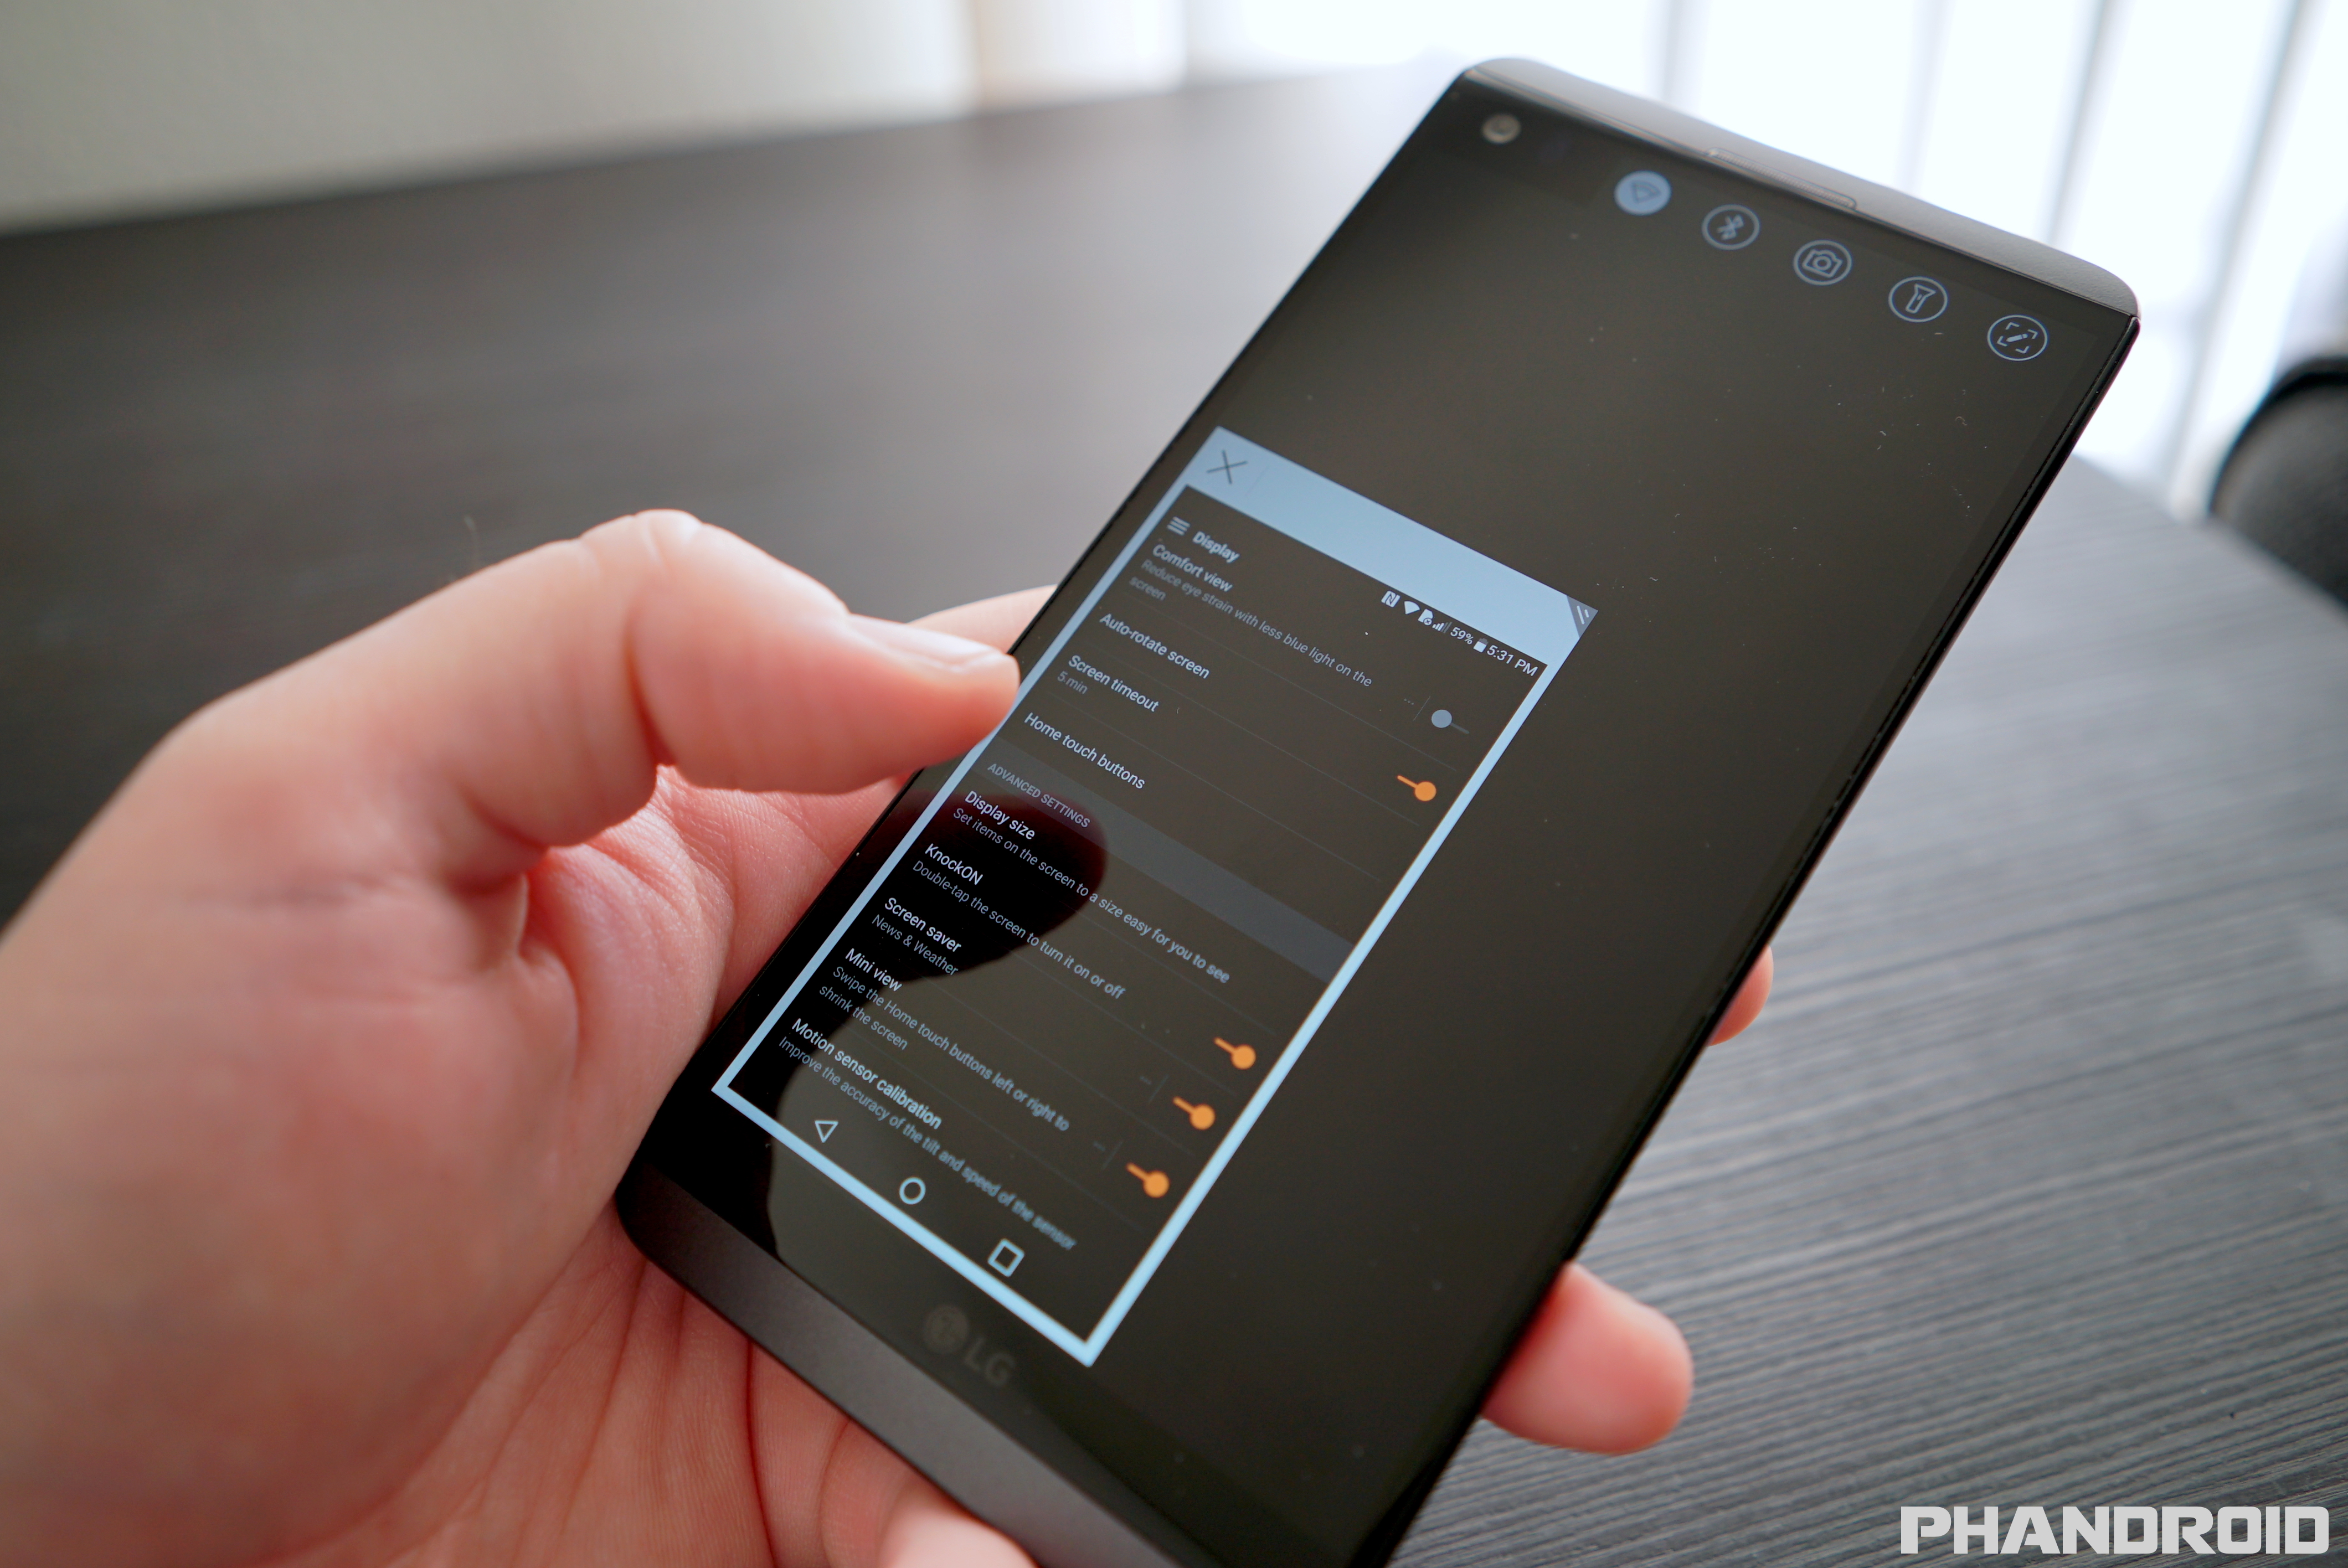 how to change time on lg phone